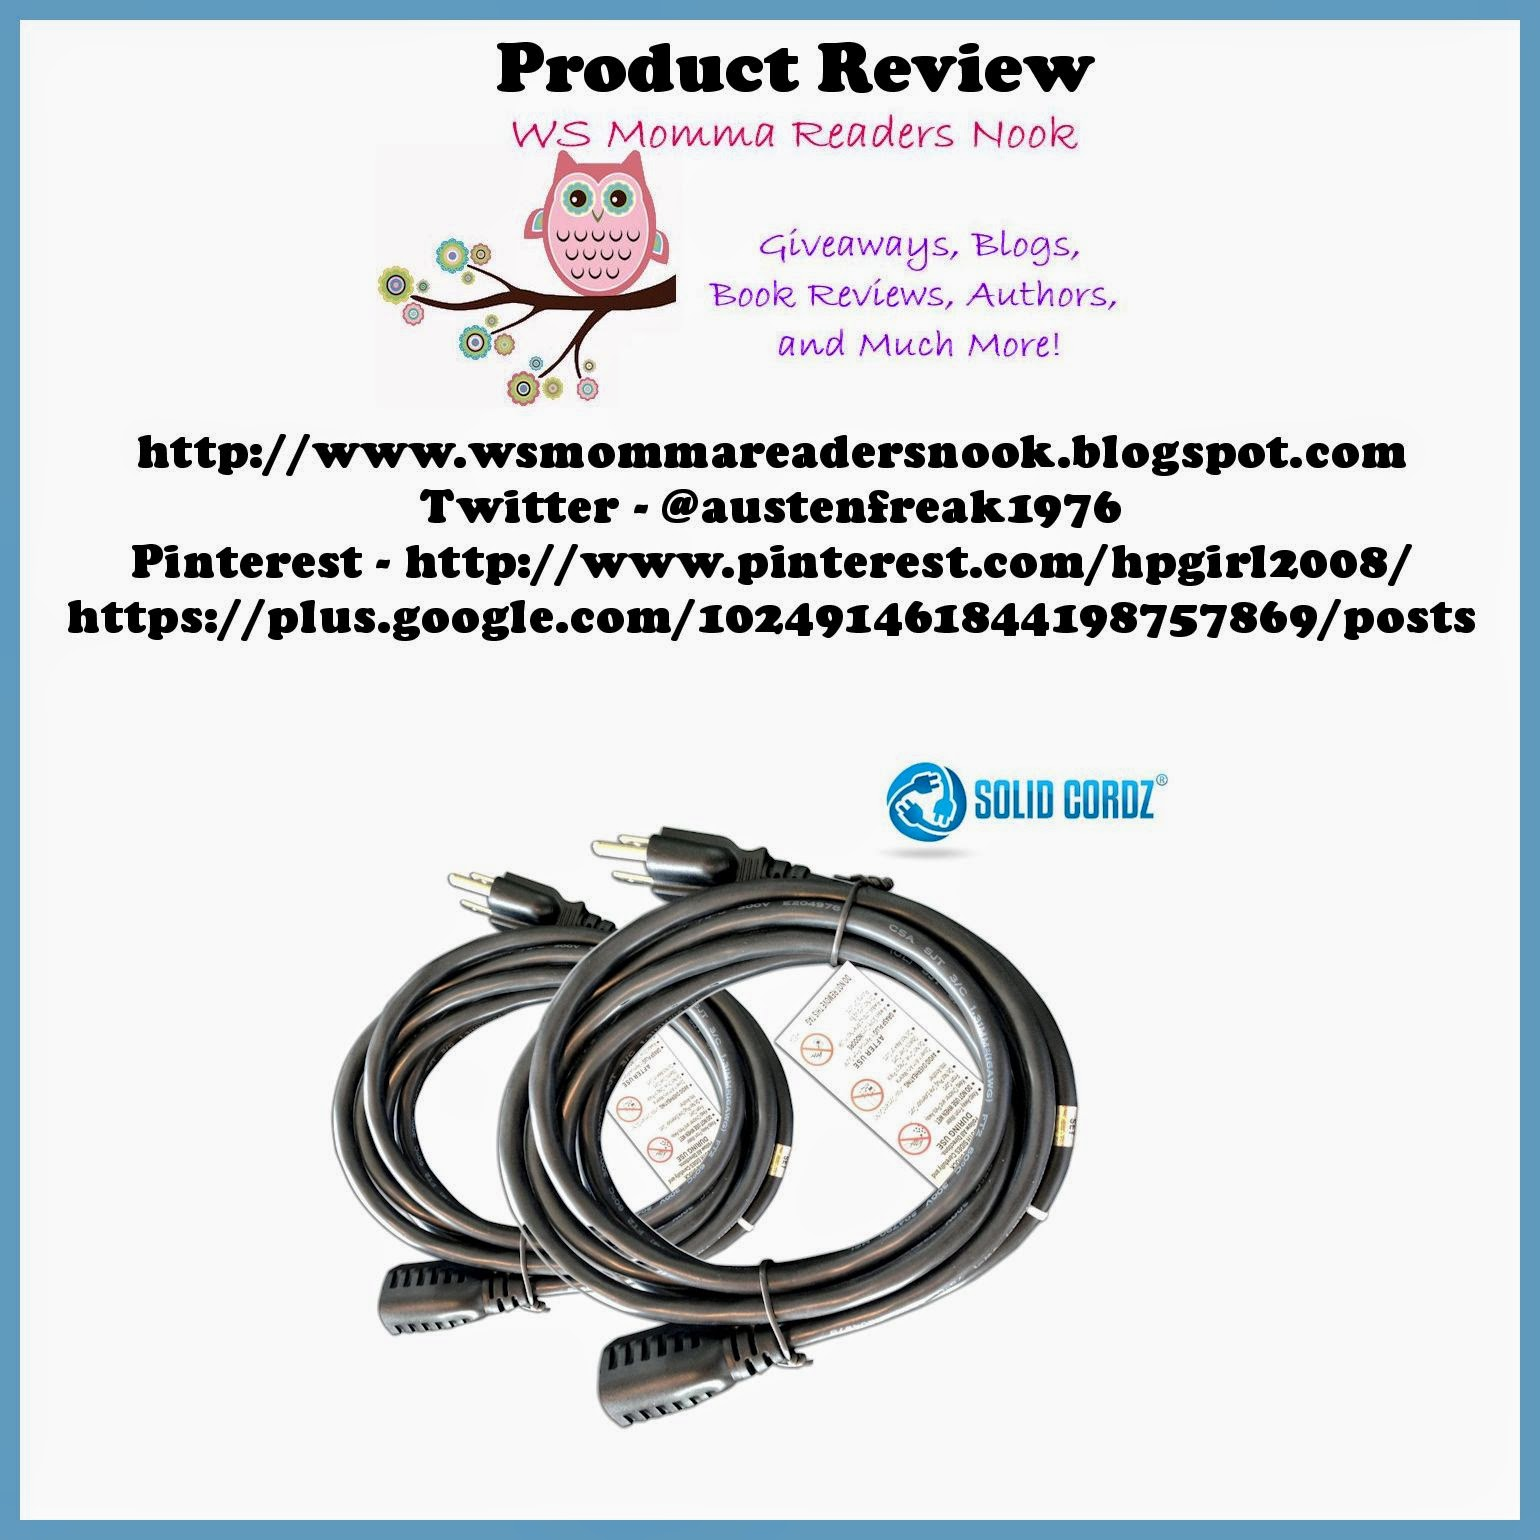 http://www.amazon.com/PREMIUM-Extension-Cables-Solid-Cordz%C2%AE/dp/B00FUKYOI4/ref=sr_1_1?ie=UTF8&qid=1404363404&sr=8-1&keywords=PREMIUM+%282+Pack%29+6+Foot+Extension+Cables